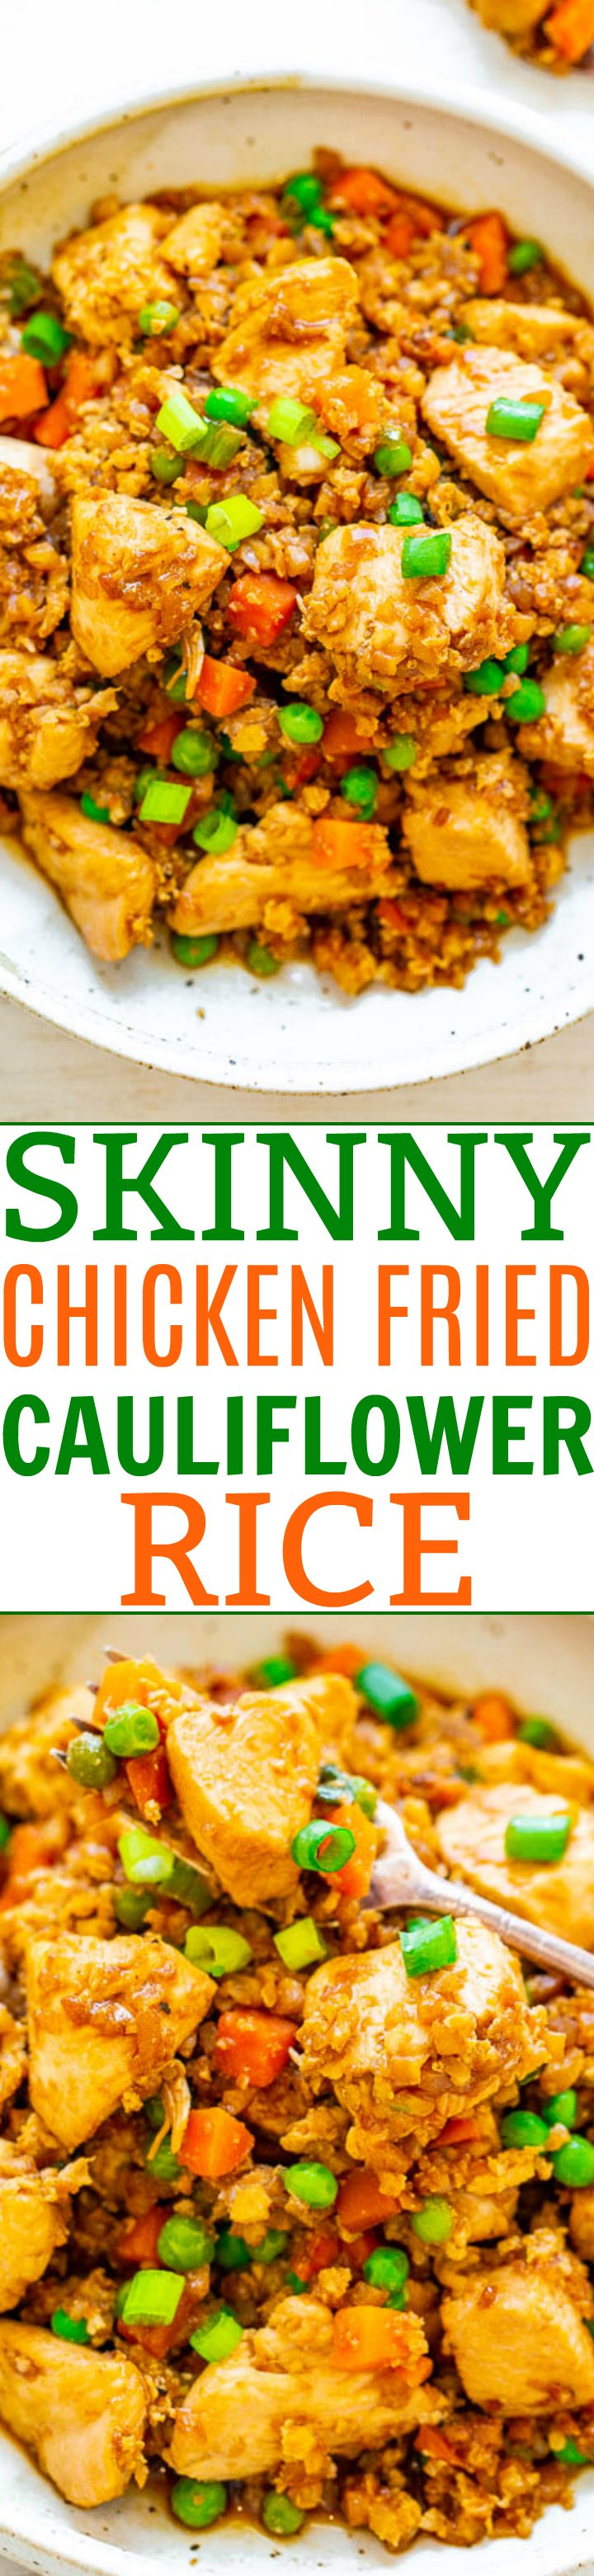 Skinny Chicken and Cauliflower Rice Stir-Fry — Even people who don't like cauliflower will be amazed at how authentic and DELICIOUS this SKINNY version of chicken fried rice tastes!! Easy, ready in 15 minutes, and so much HEALTHIER than calling for takeout!!